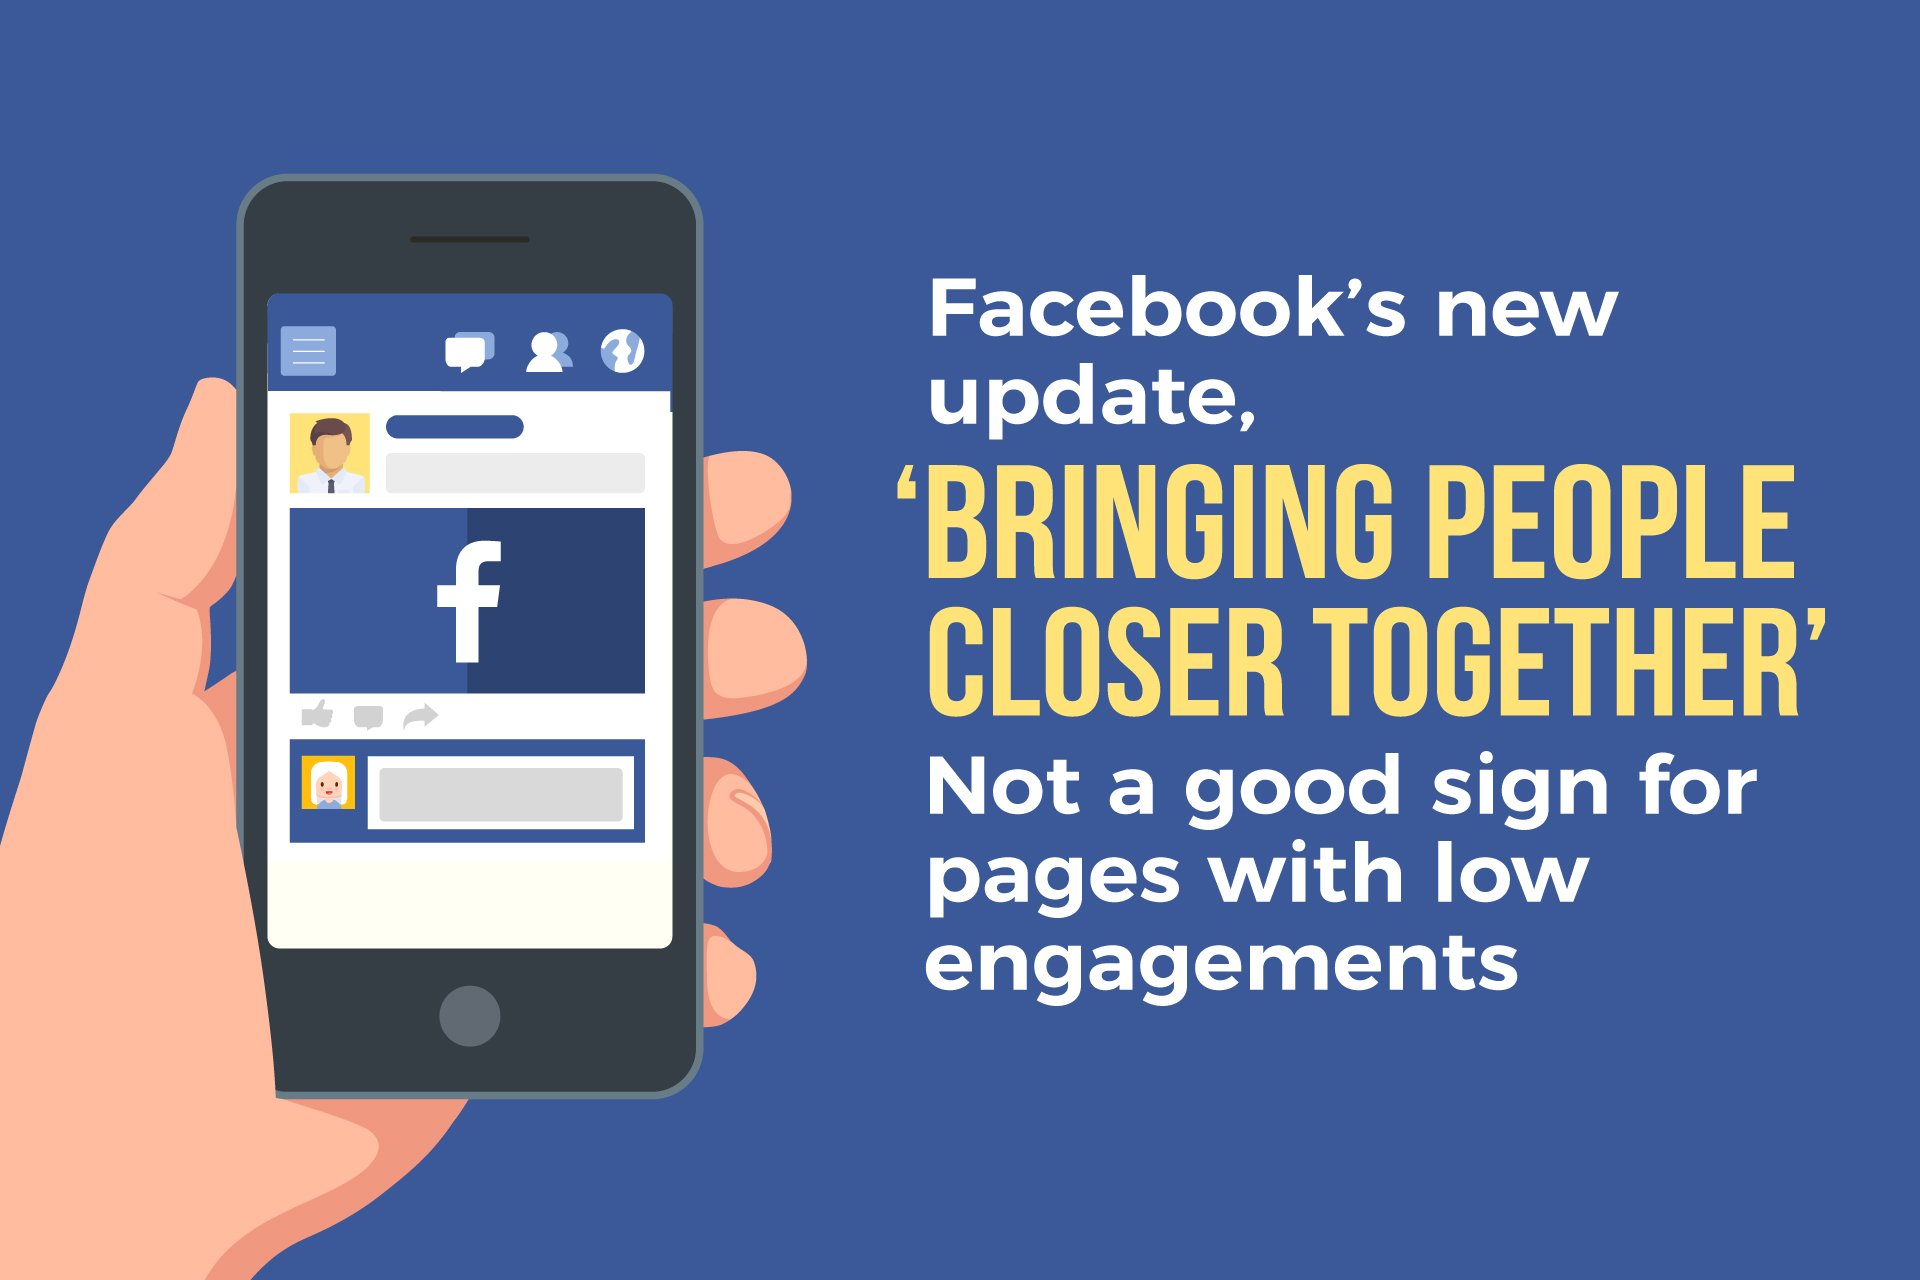 Facebook's New Update, 'Bringing People Closer Together' – Not a Good Sign for Pages with Low Engagements